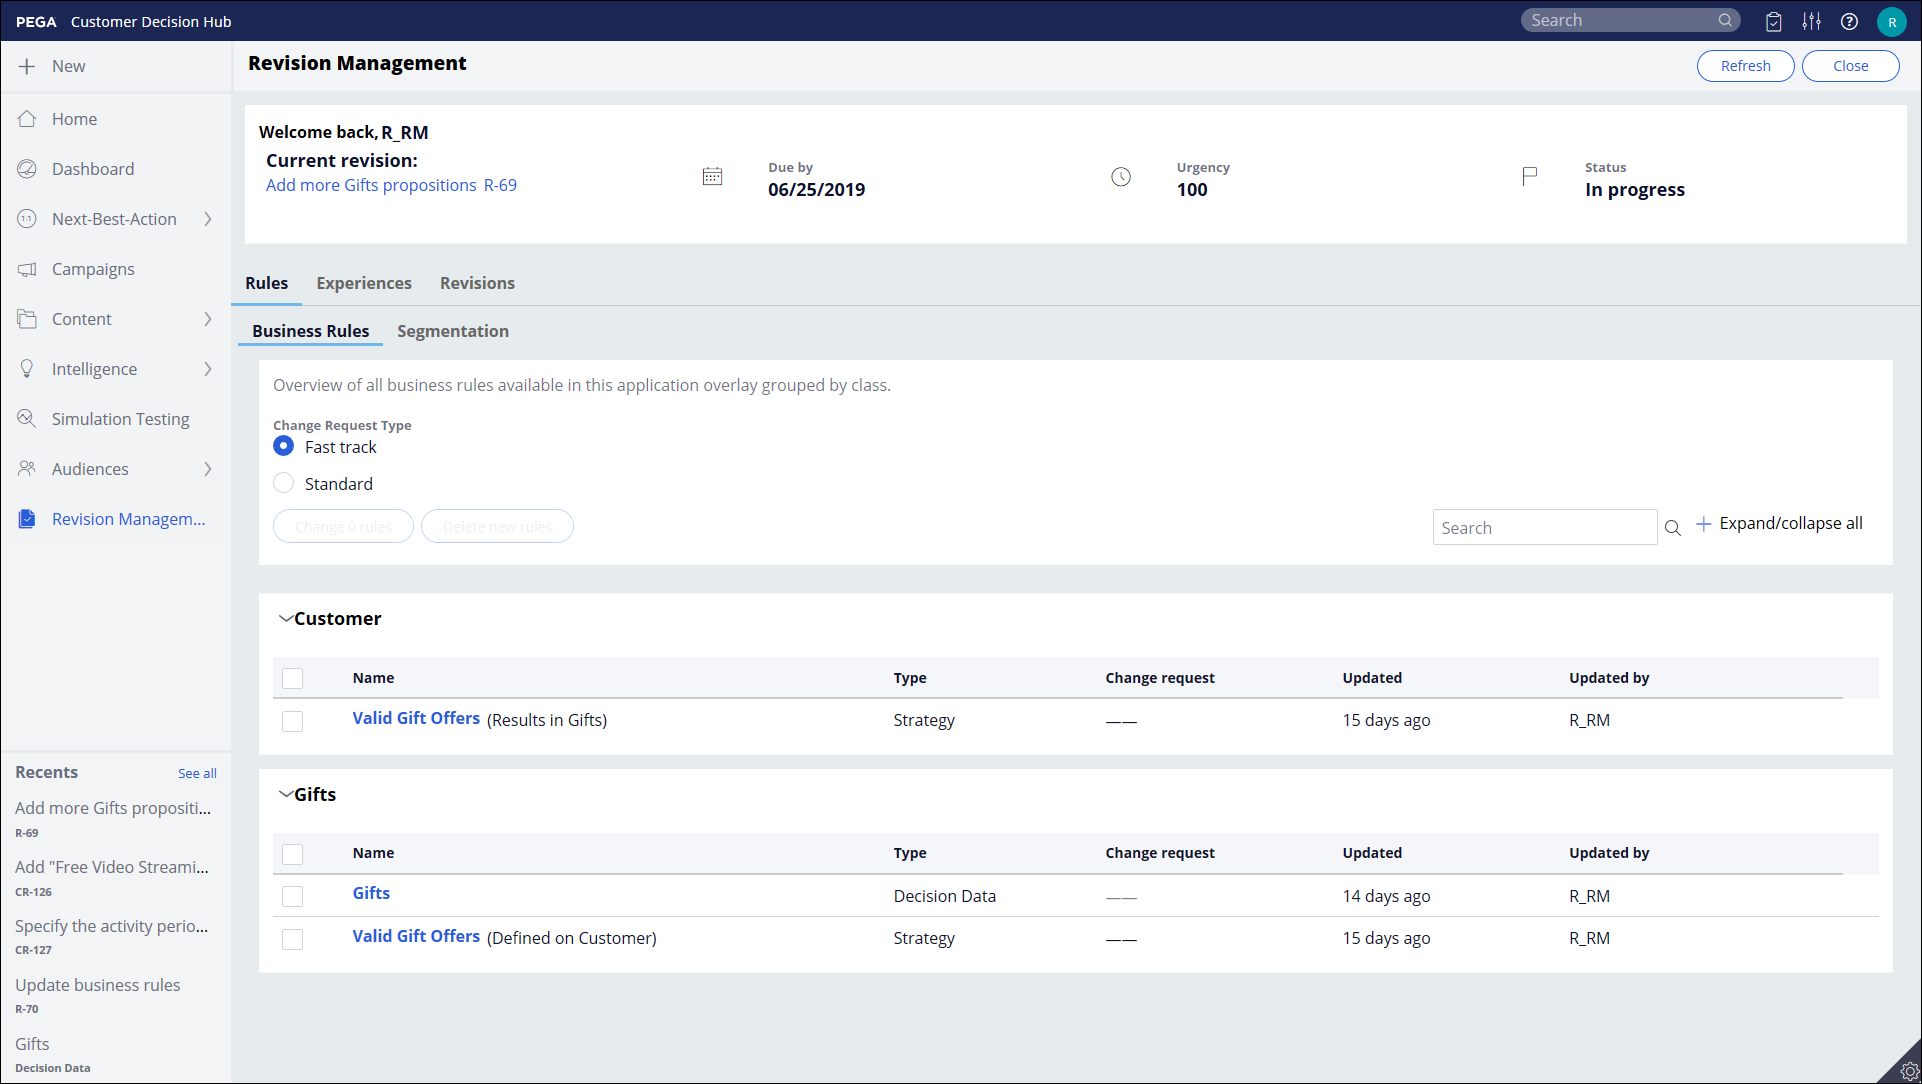 Screen capture of the Revision Management landing page in the Pega Customer Decision Hub portal